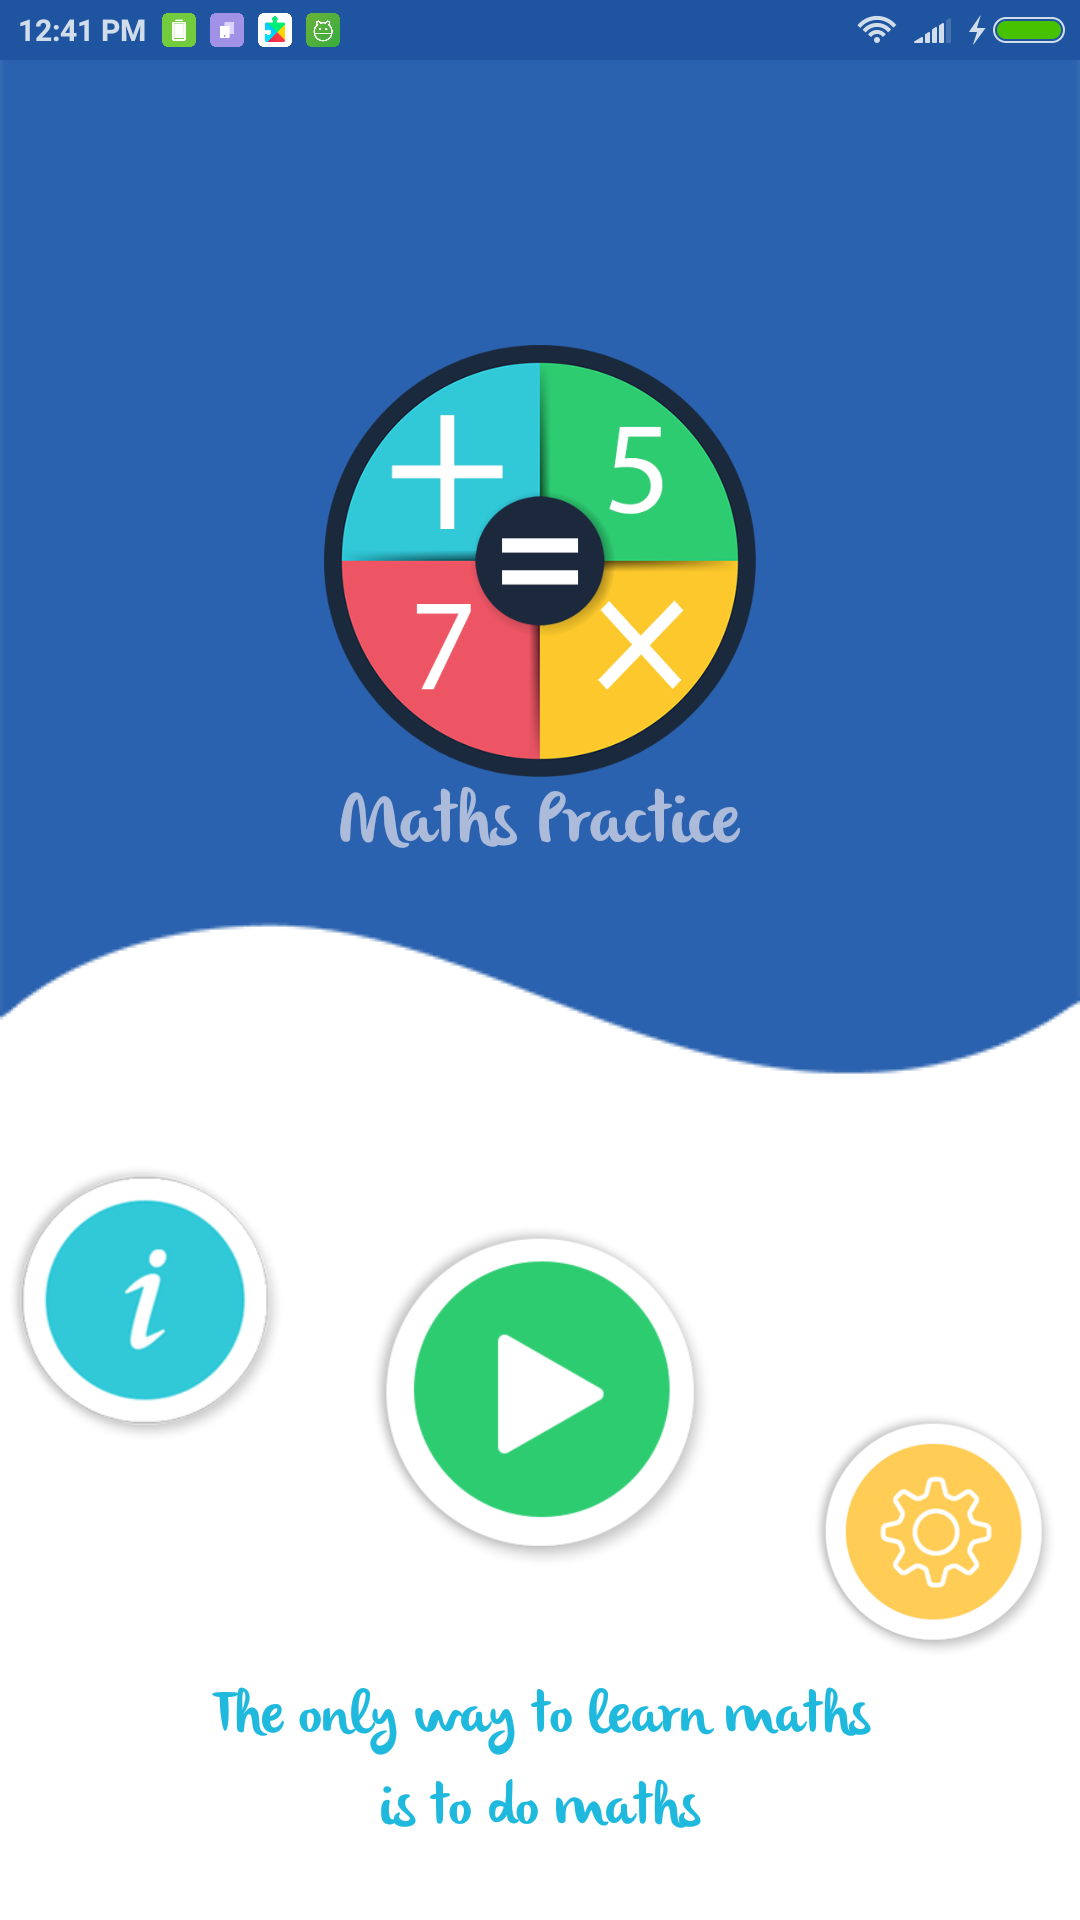 maths practice - app - home screen - android - source code - free - arkayapps